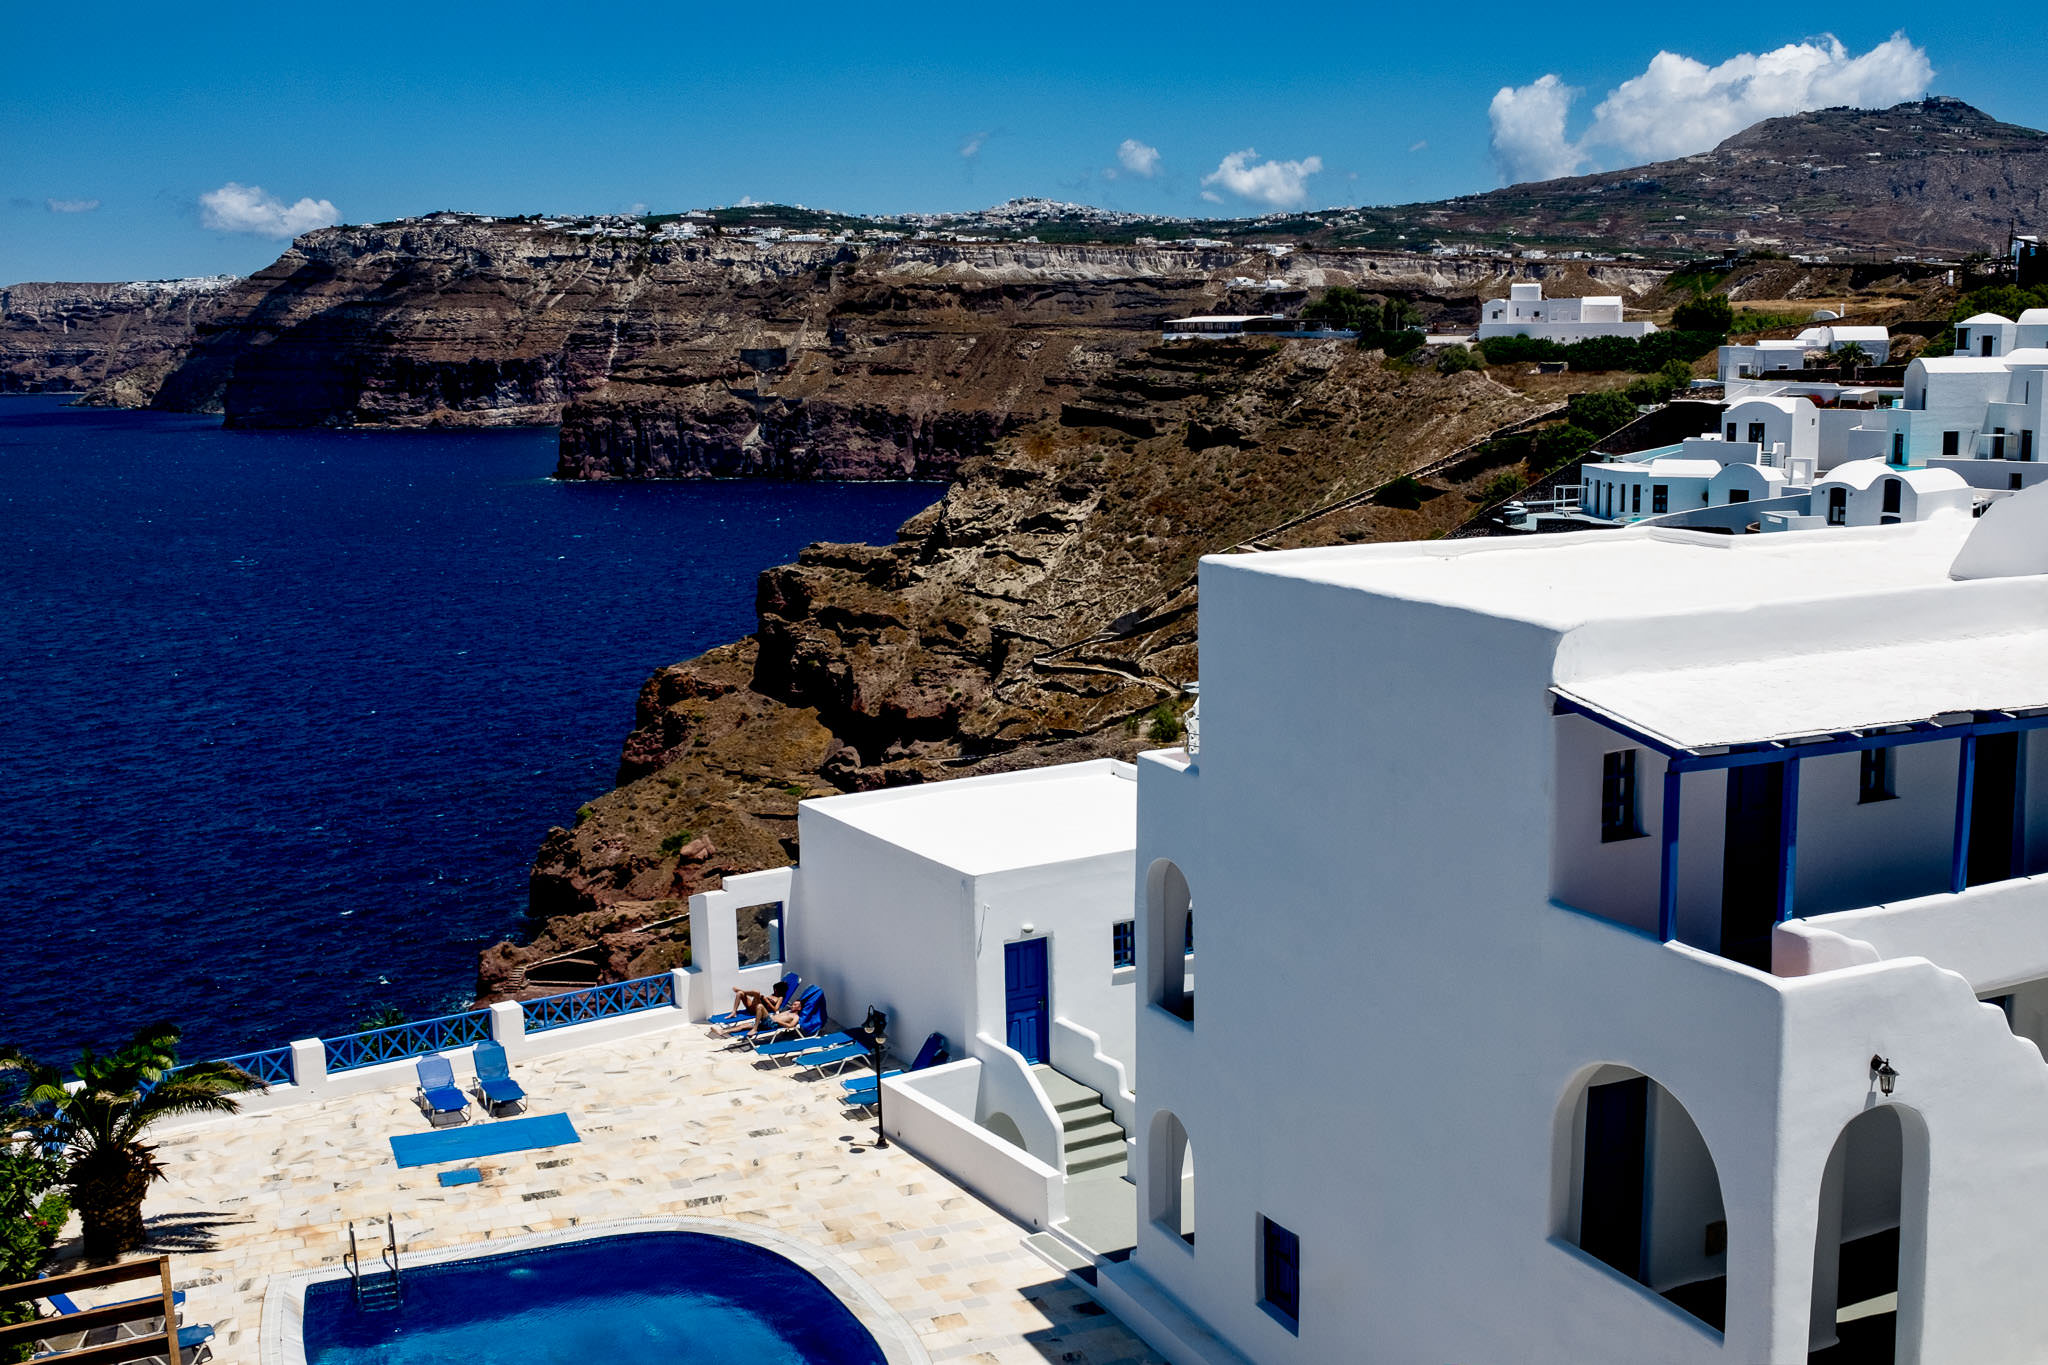 Beautiful White Wash Greek homes overlooking Santorini Greece ocean